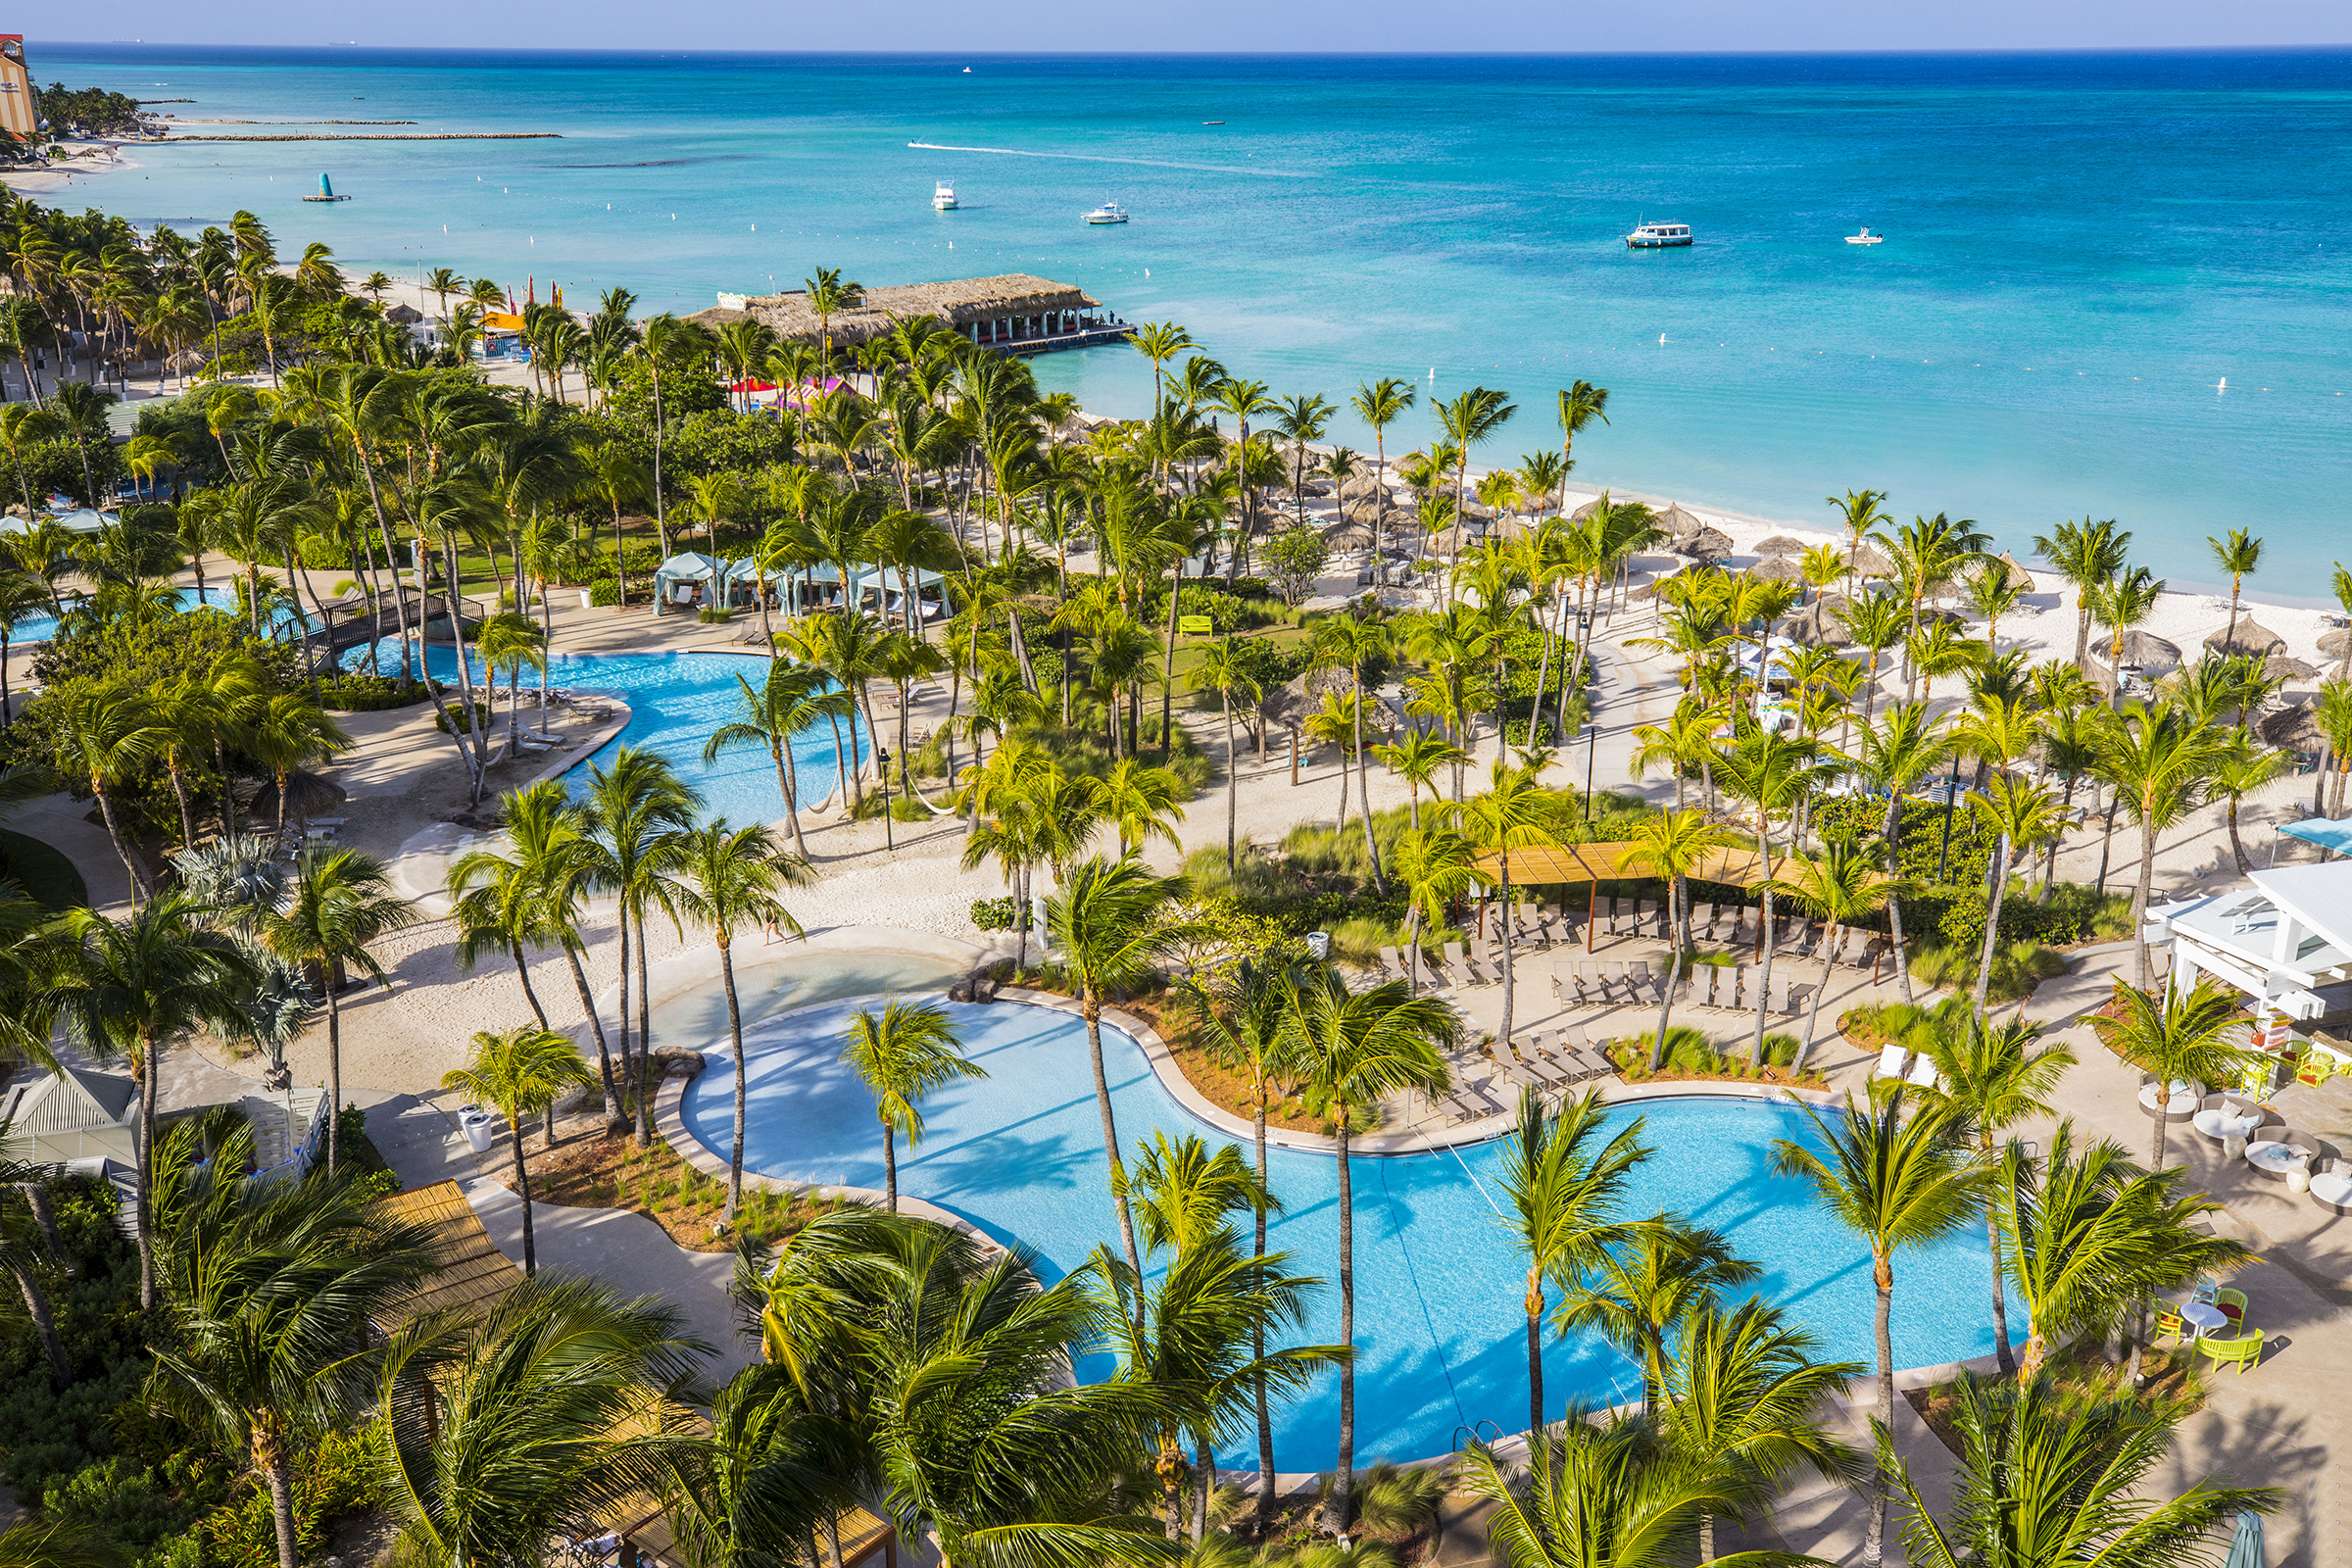 Hero-hiltonaruba-balcony-view-0084